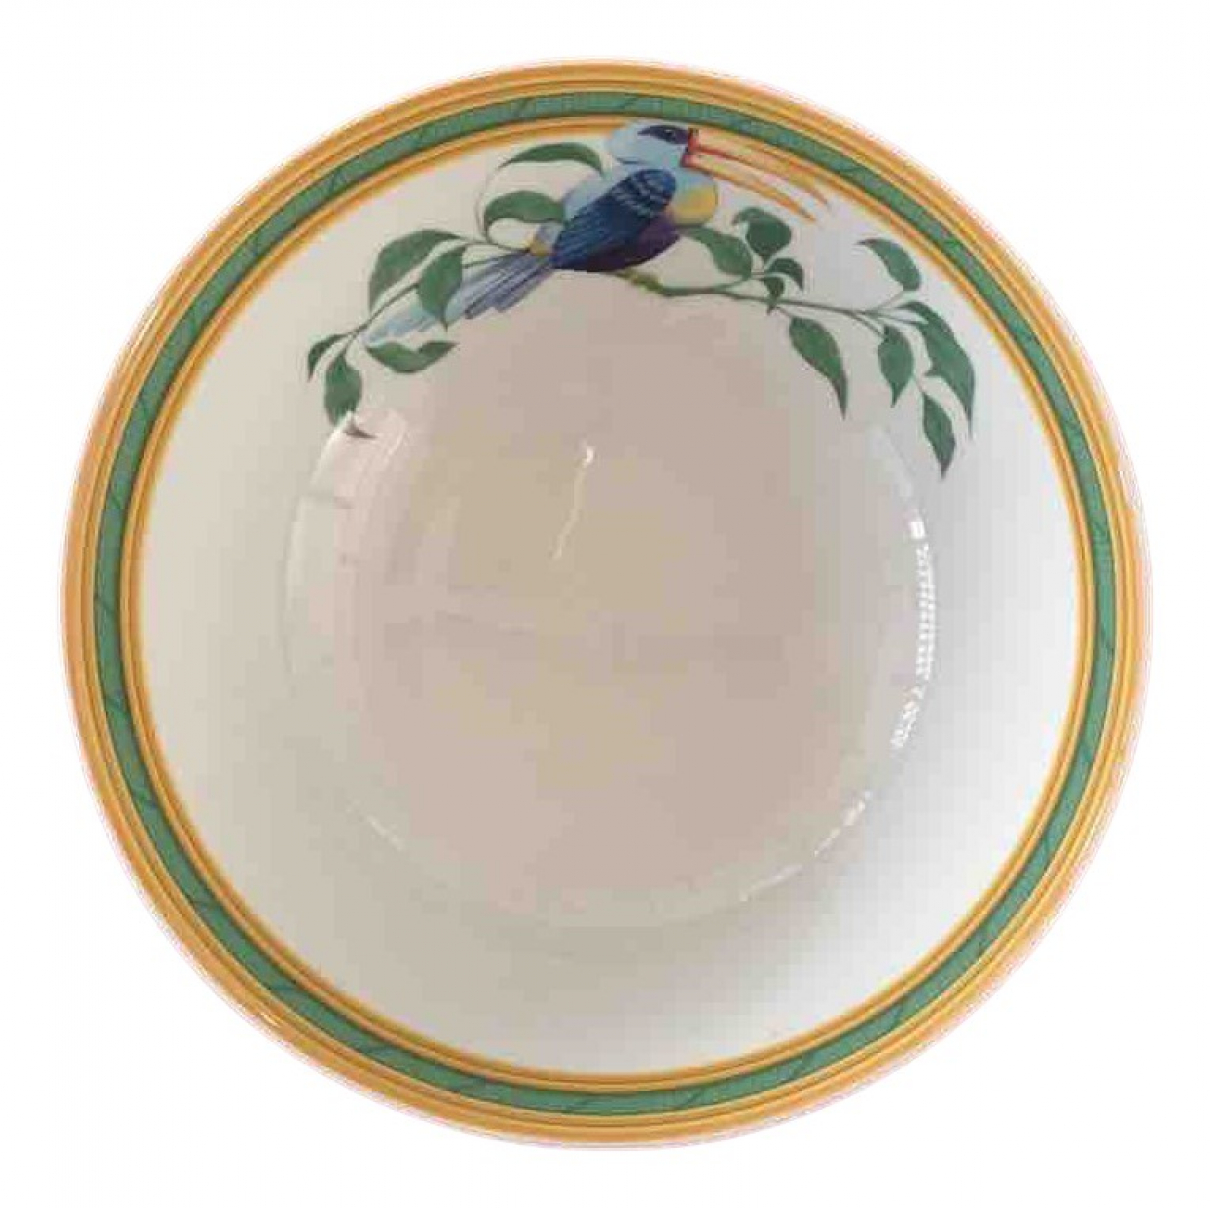 Hermes - Arts de la table Toucans pour lifestyle en porcelaine - blanc